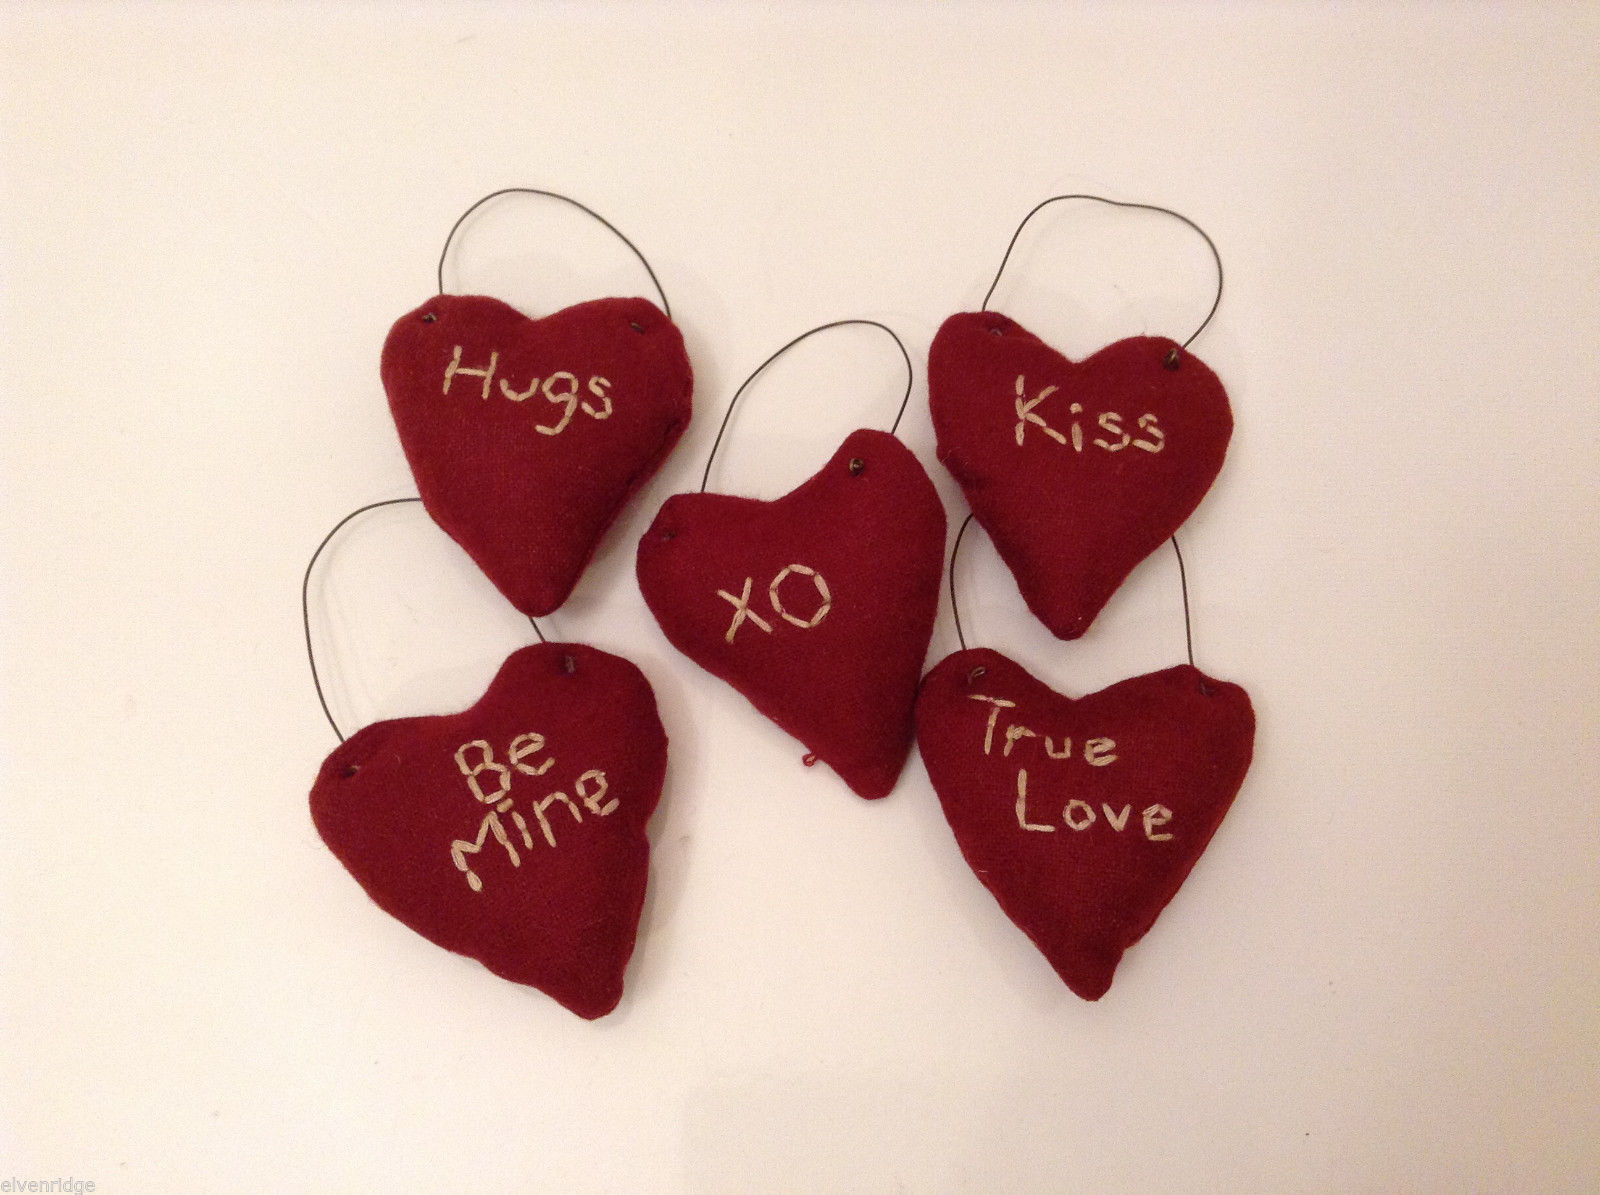 Lot of 5 Fabric Red Valentine's Heart Decorations w/ Handstitched Love Messages